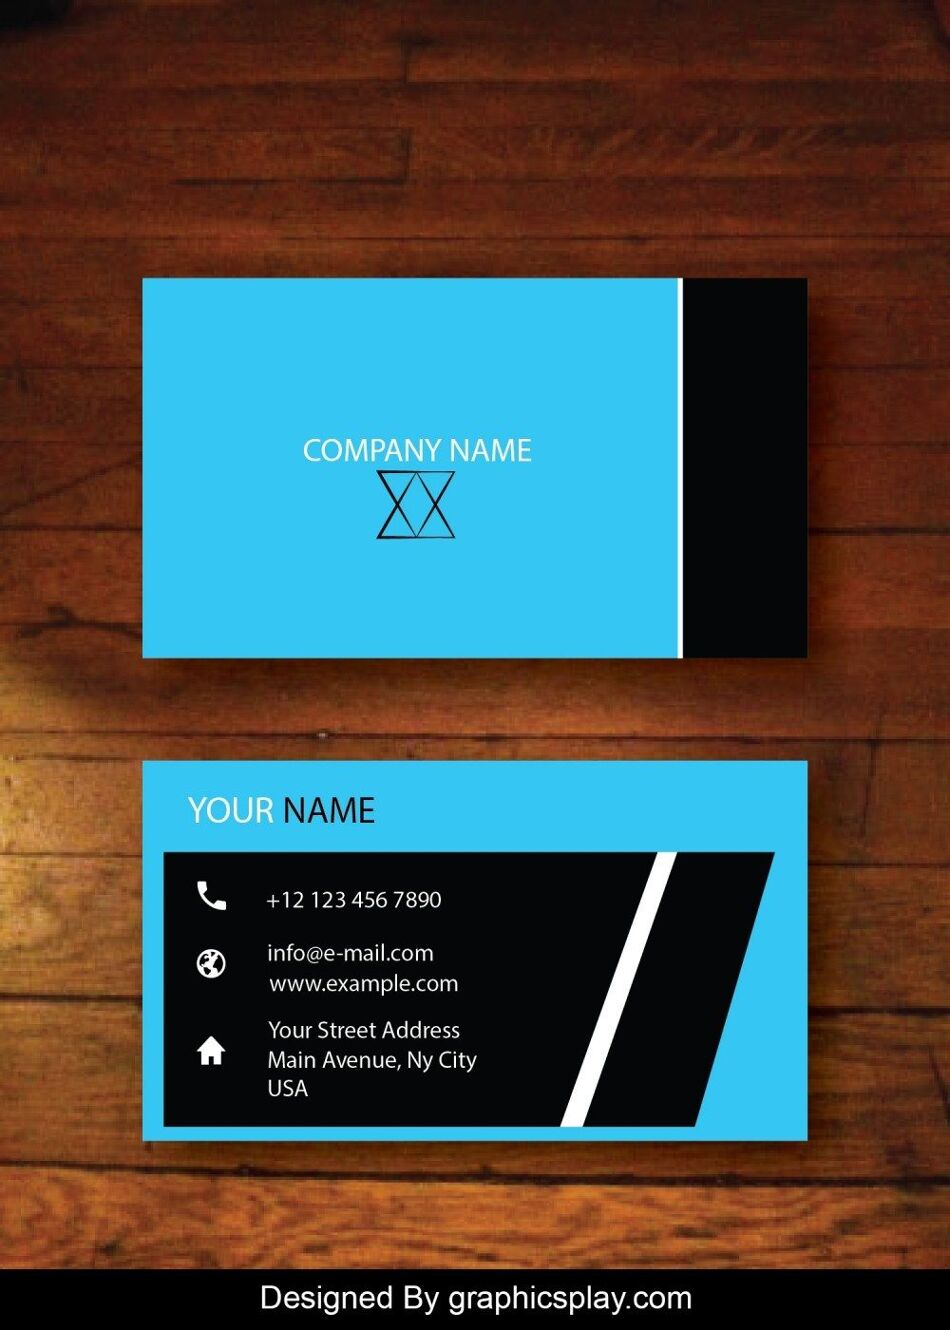 Business Card Design Vector Template - ID 1728 1